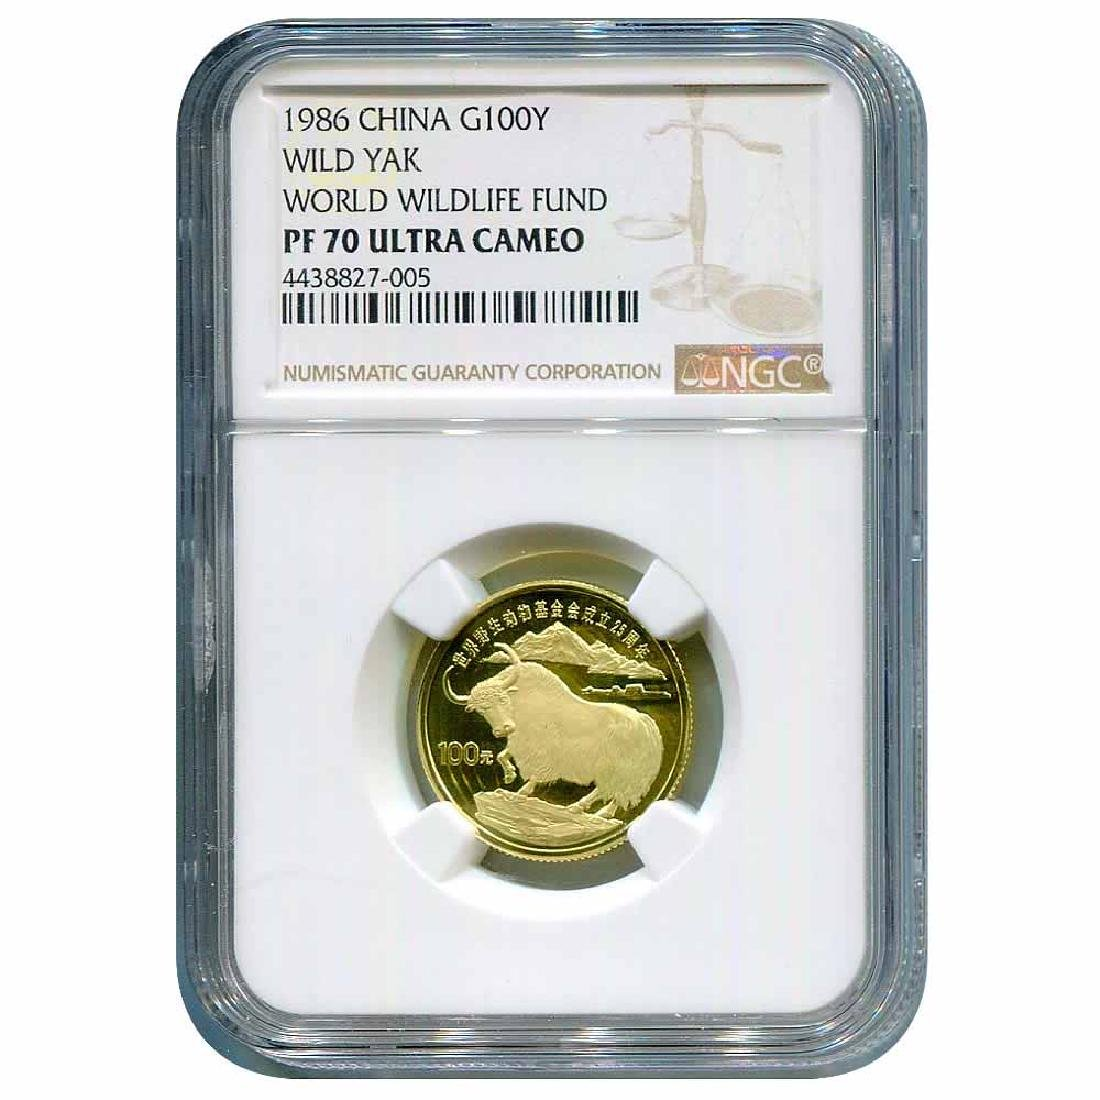 China 100 Yuan Gold 1986 Wild Yak PF70 NGC